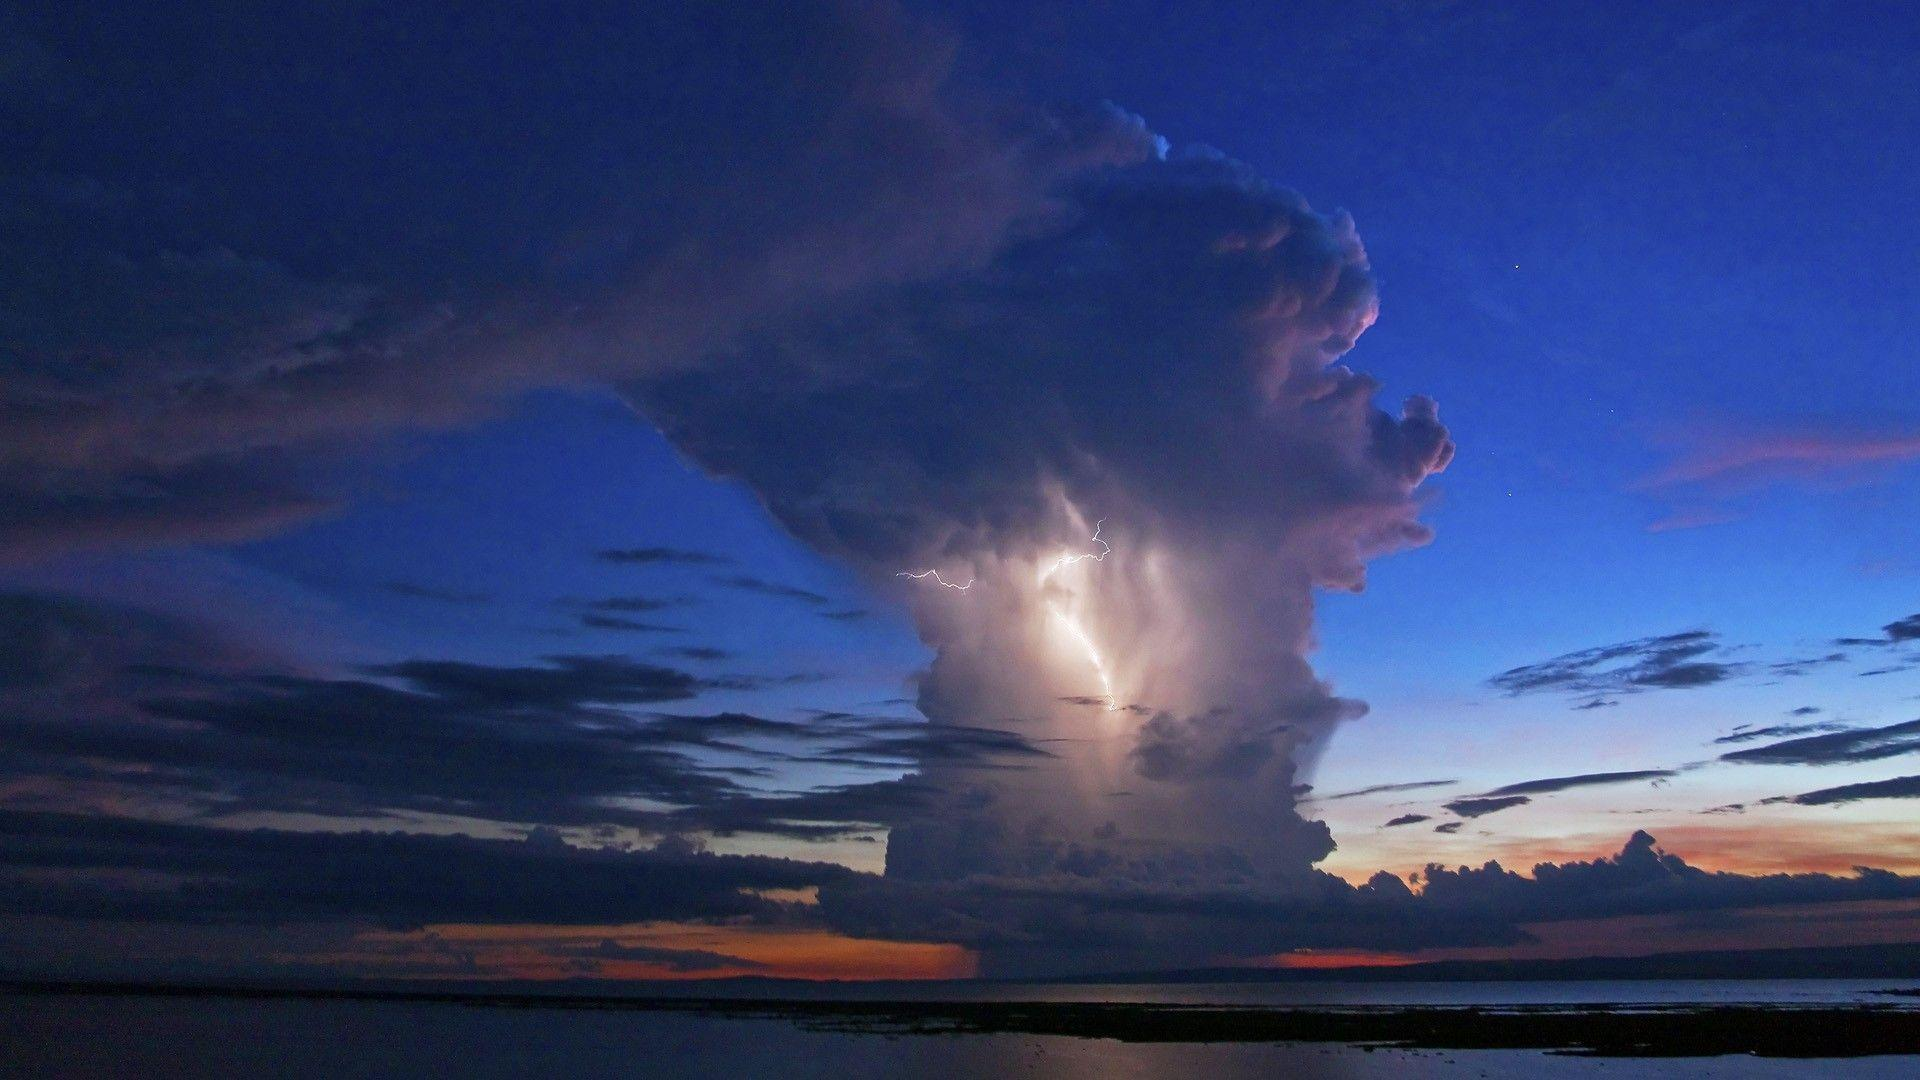 Storm Clouds Wallpapers: Supercell Wallpapers